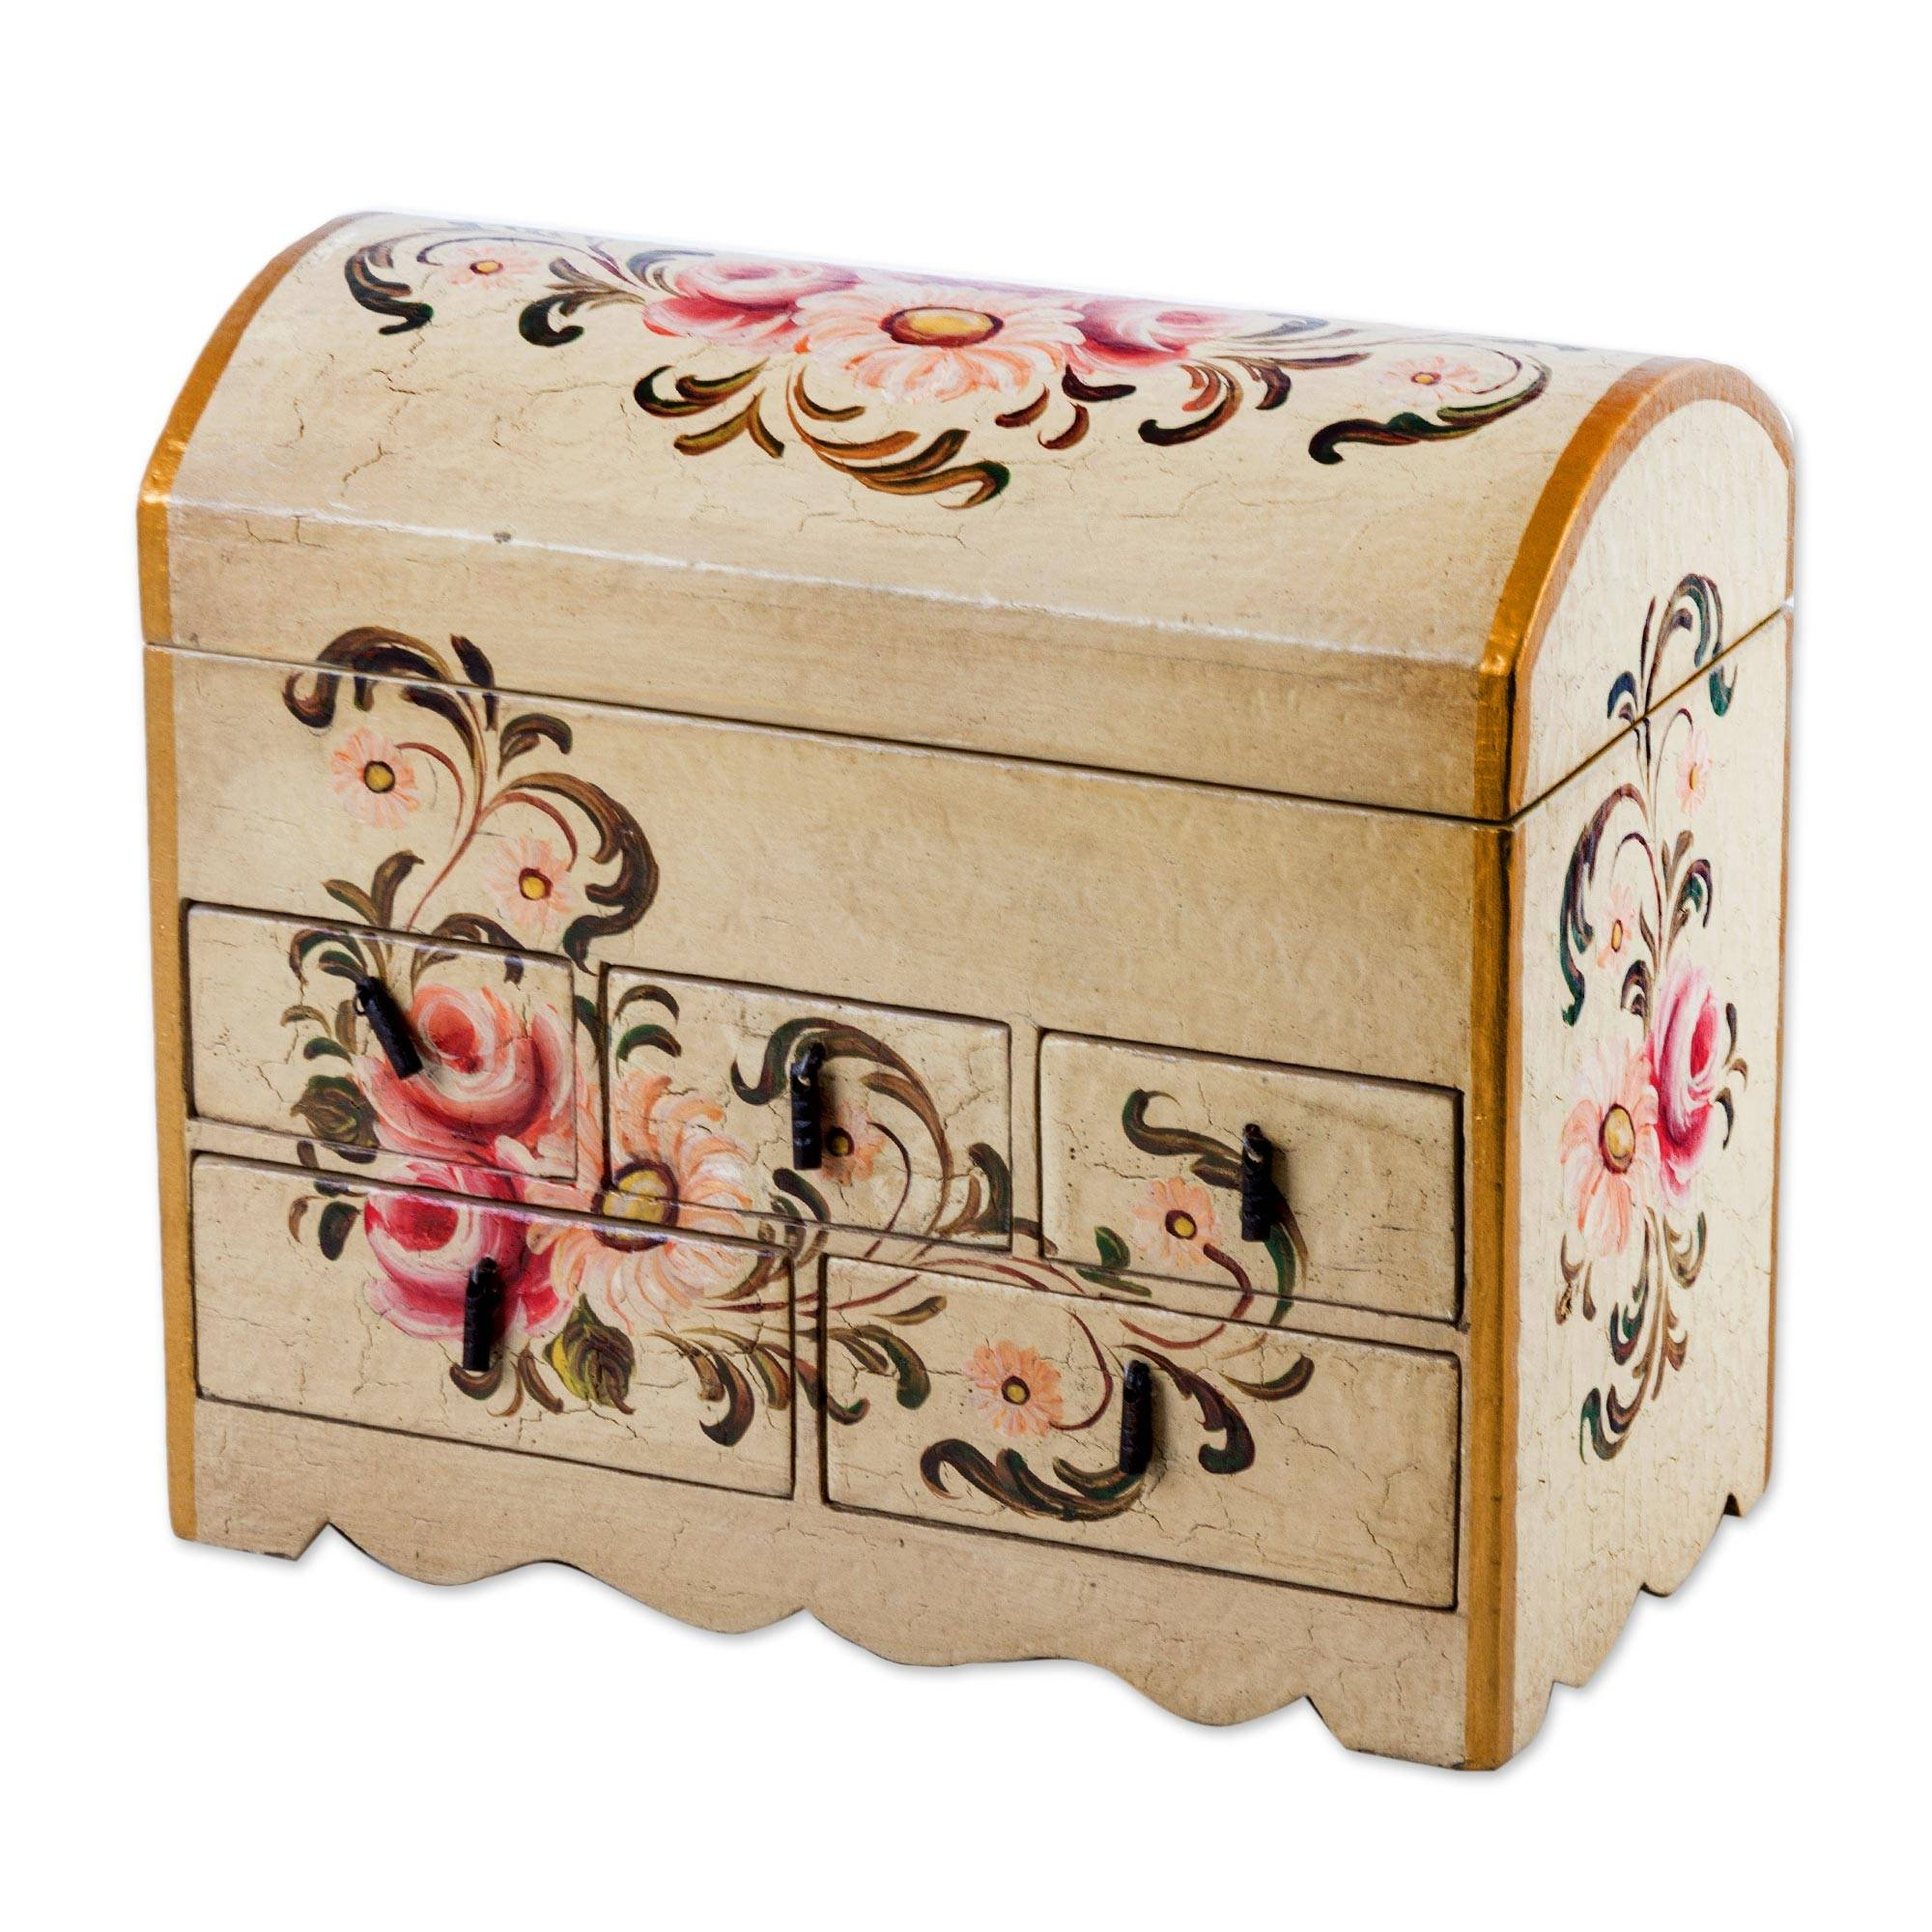 NOVICA Handcrafted White and Pink Mini Chest of Drawers Floral Wood Jewelry Box, Rose Bouquet'